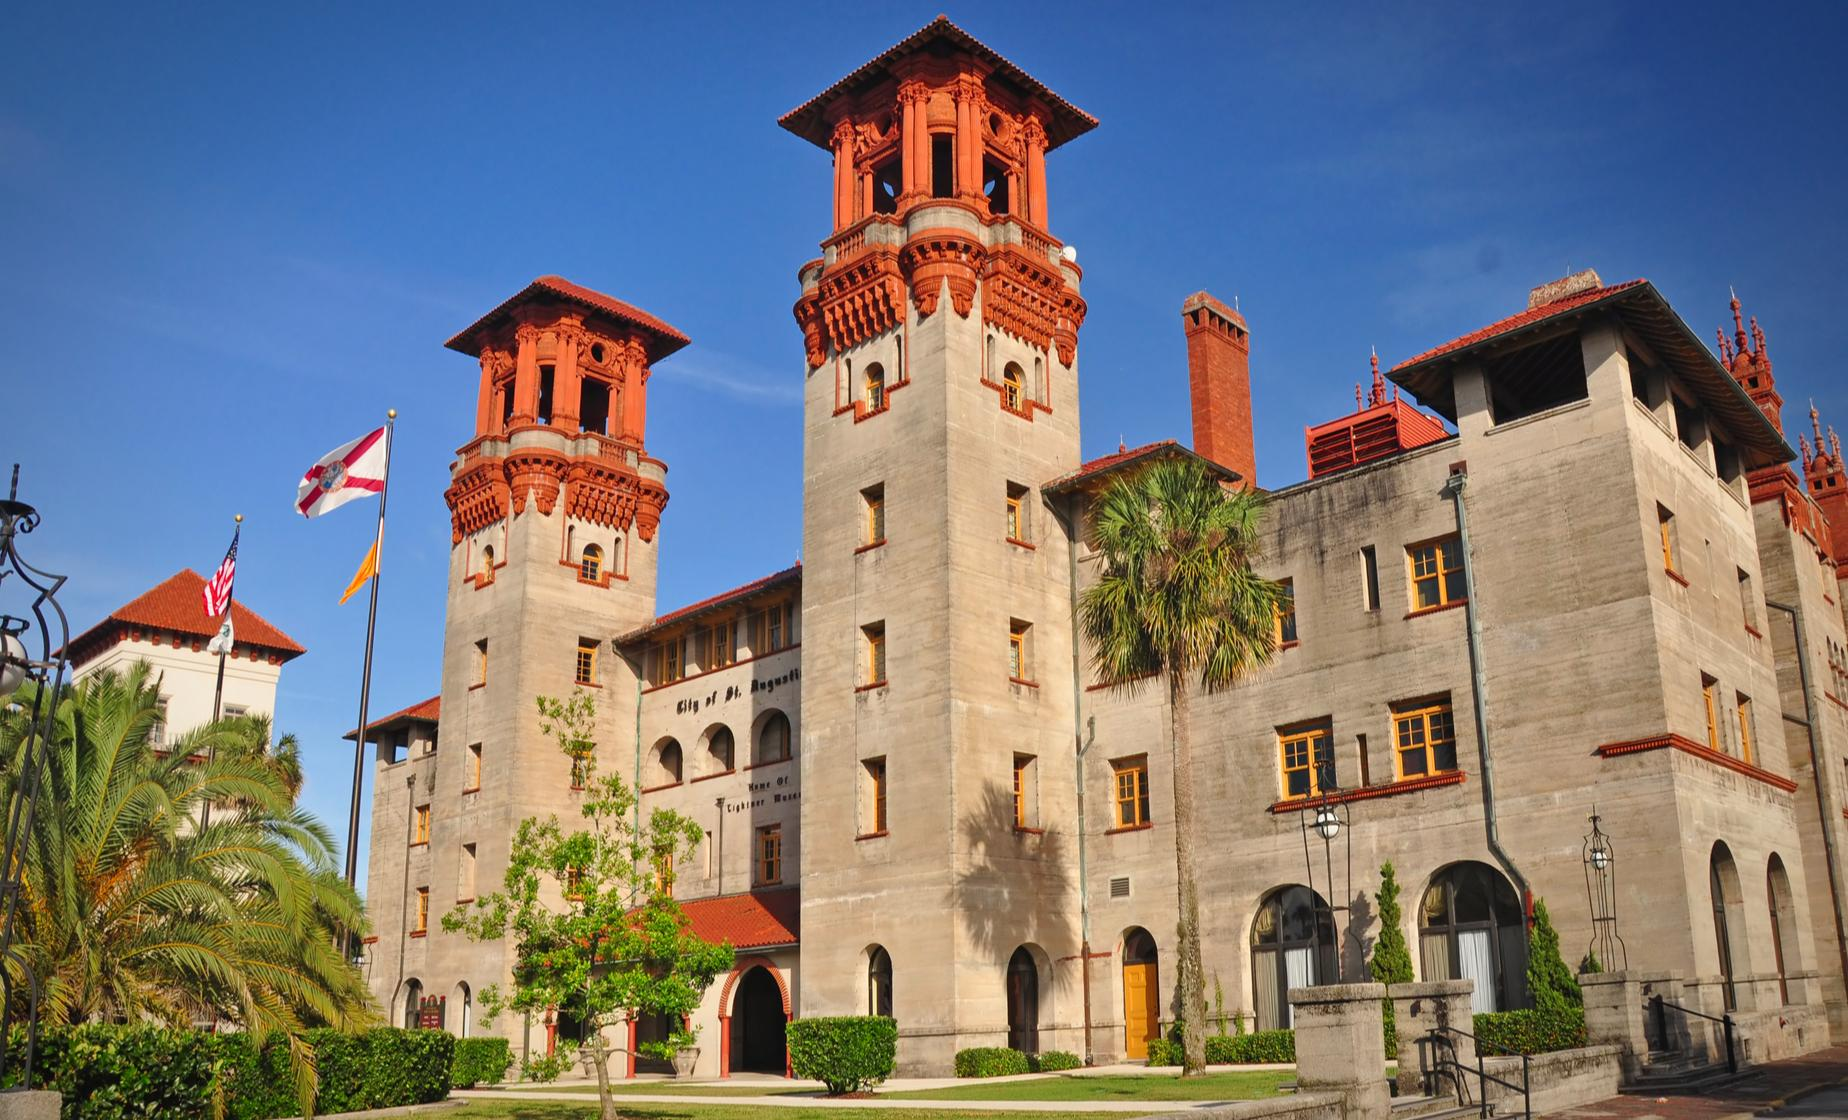 Scenic Cruise and Day Trip to St. Augustine from Orlando (Lightner Museum, Flagler College)